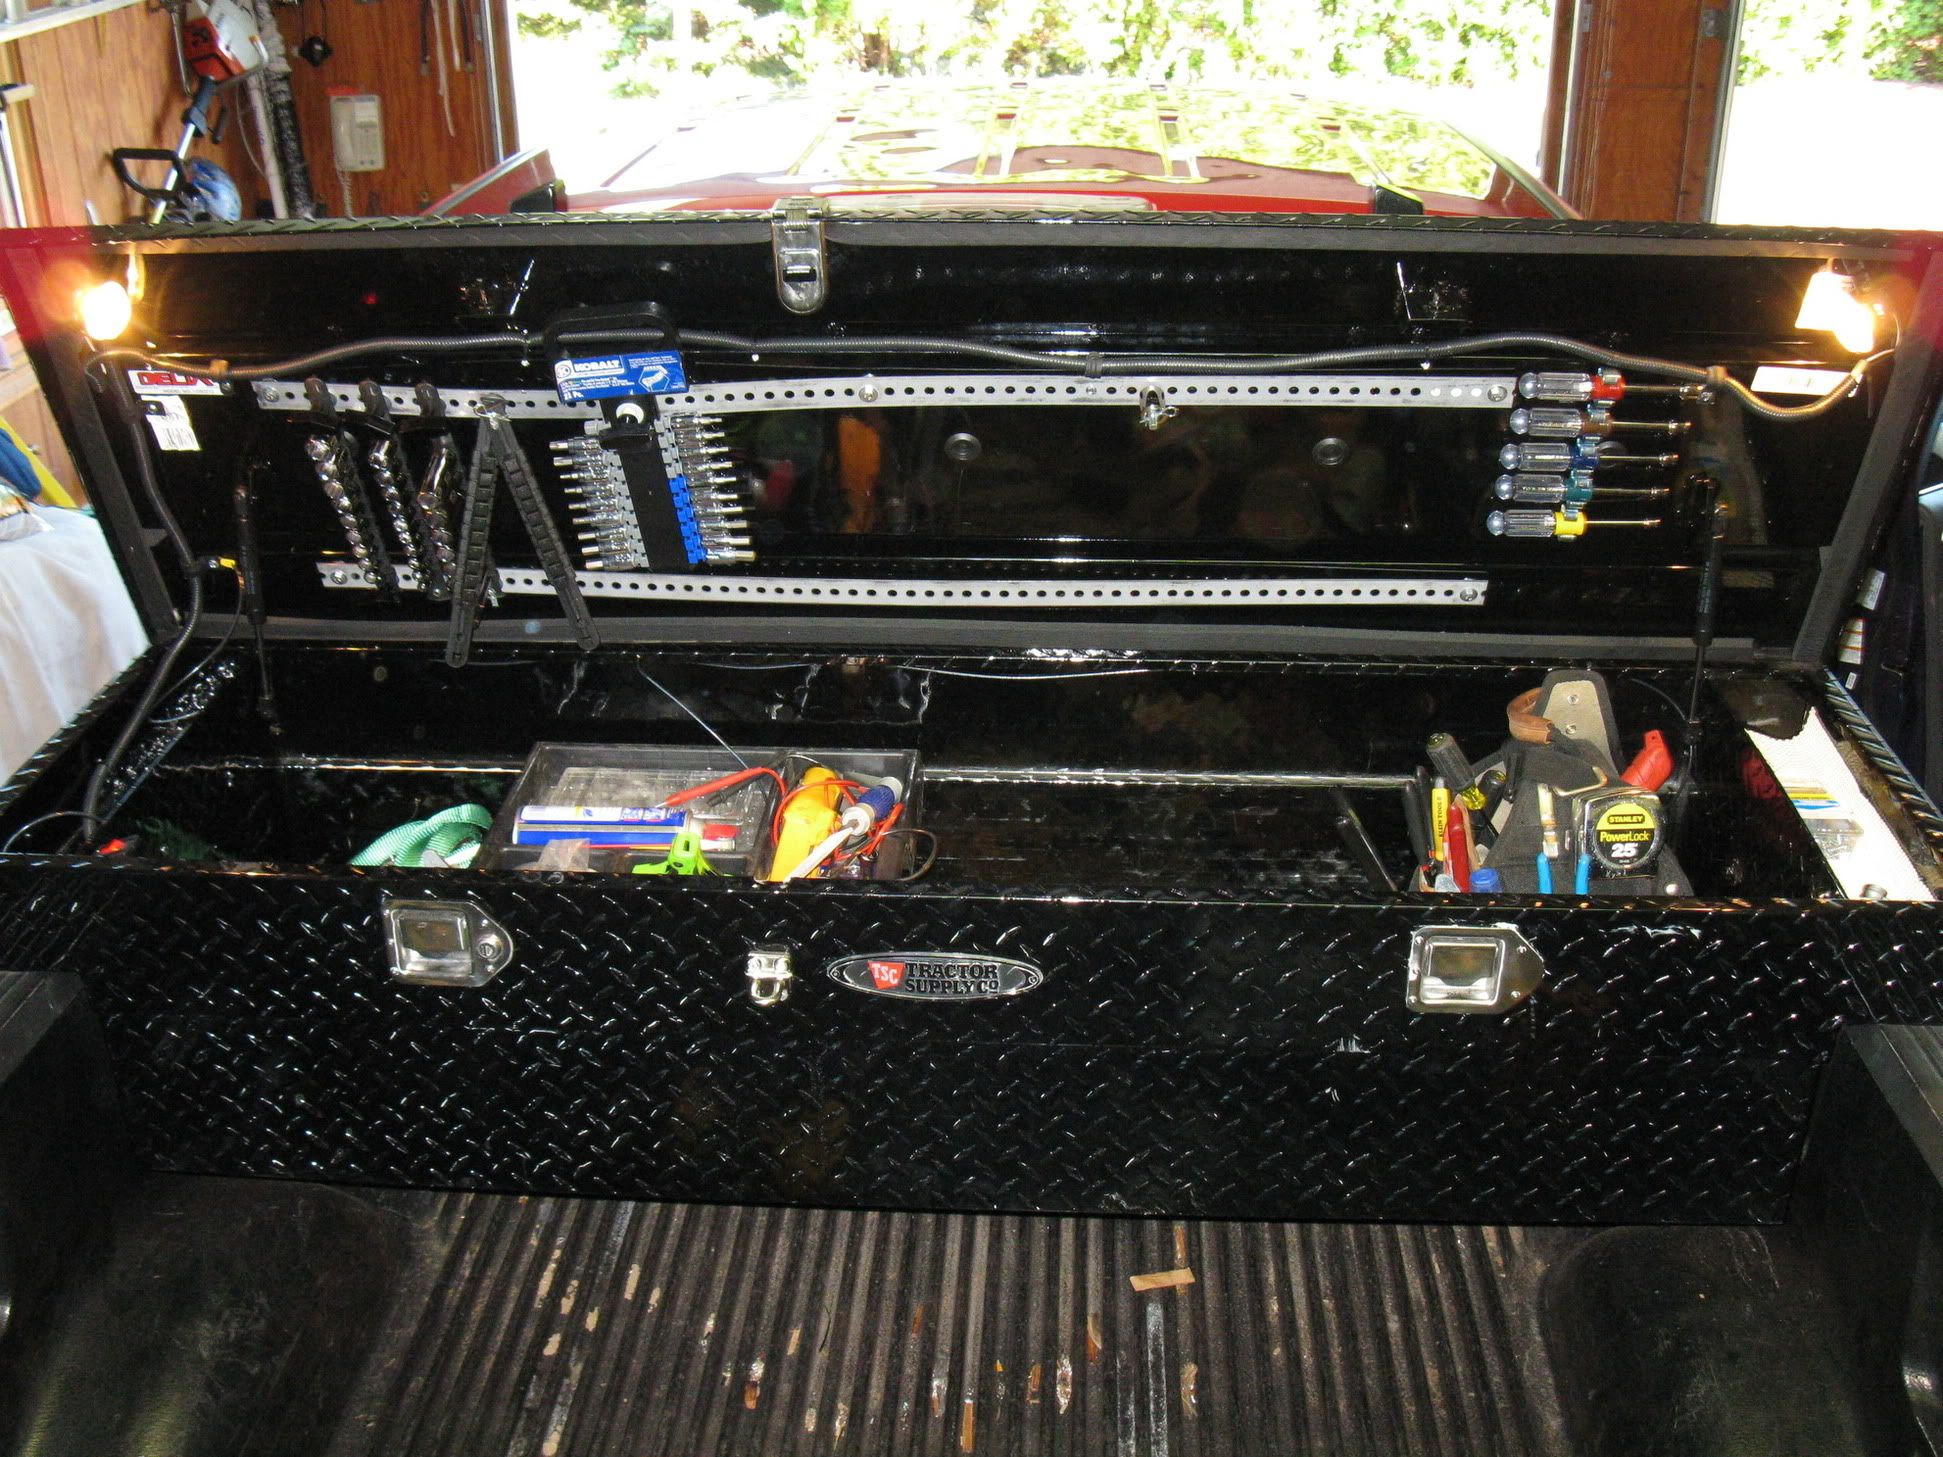 toolbox organizer ideas anybody ford f150 forum community of ford truck fans marks. Black Bedroom Furniture Sets. Home Design Ideas